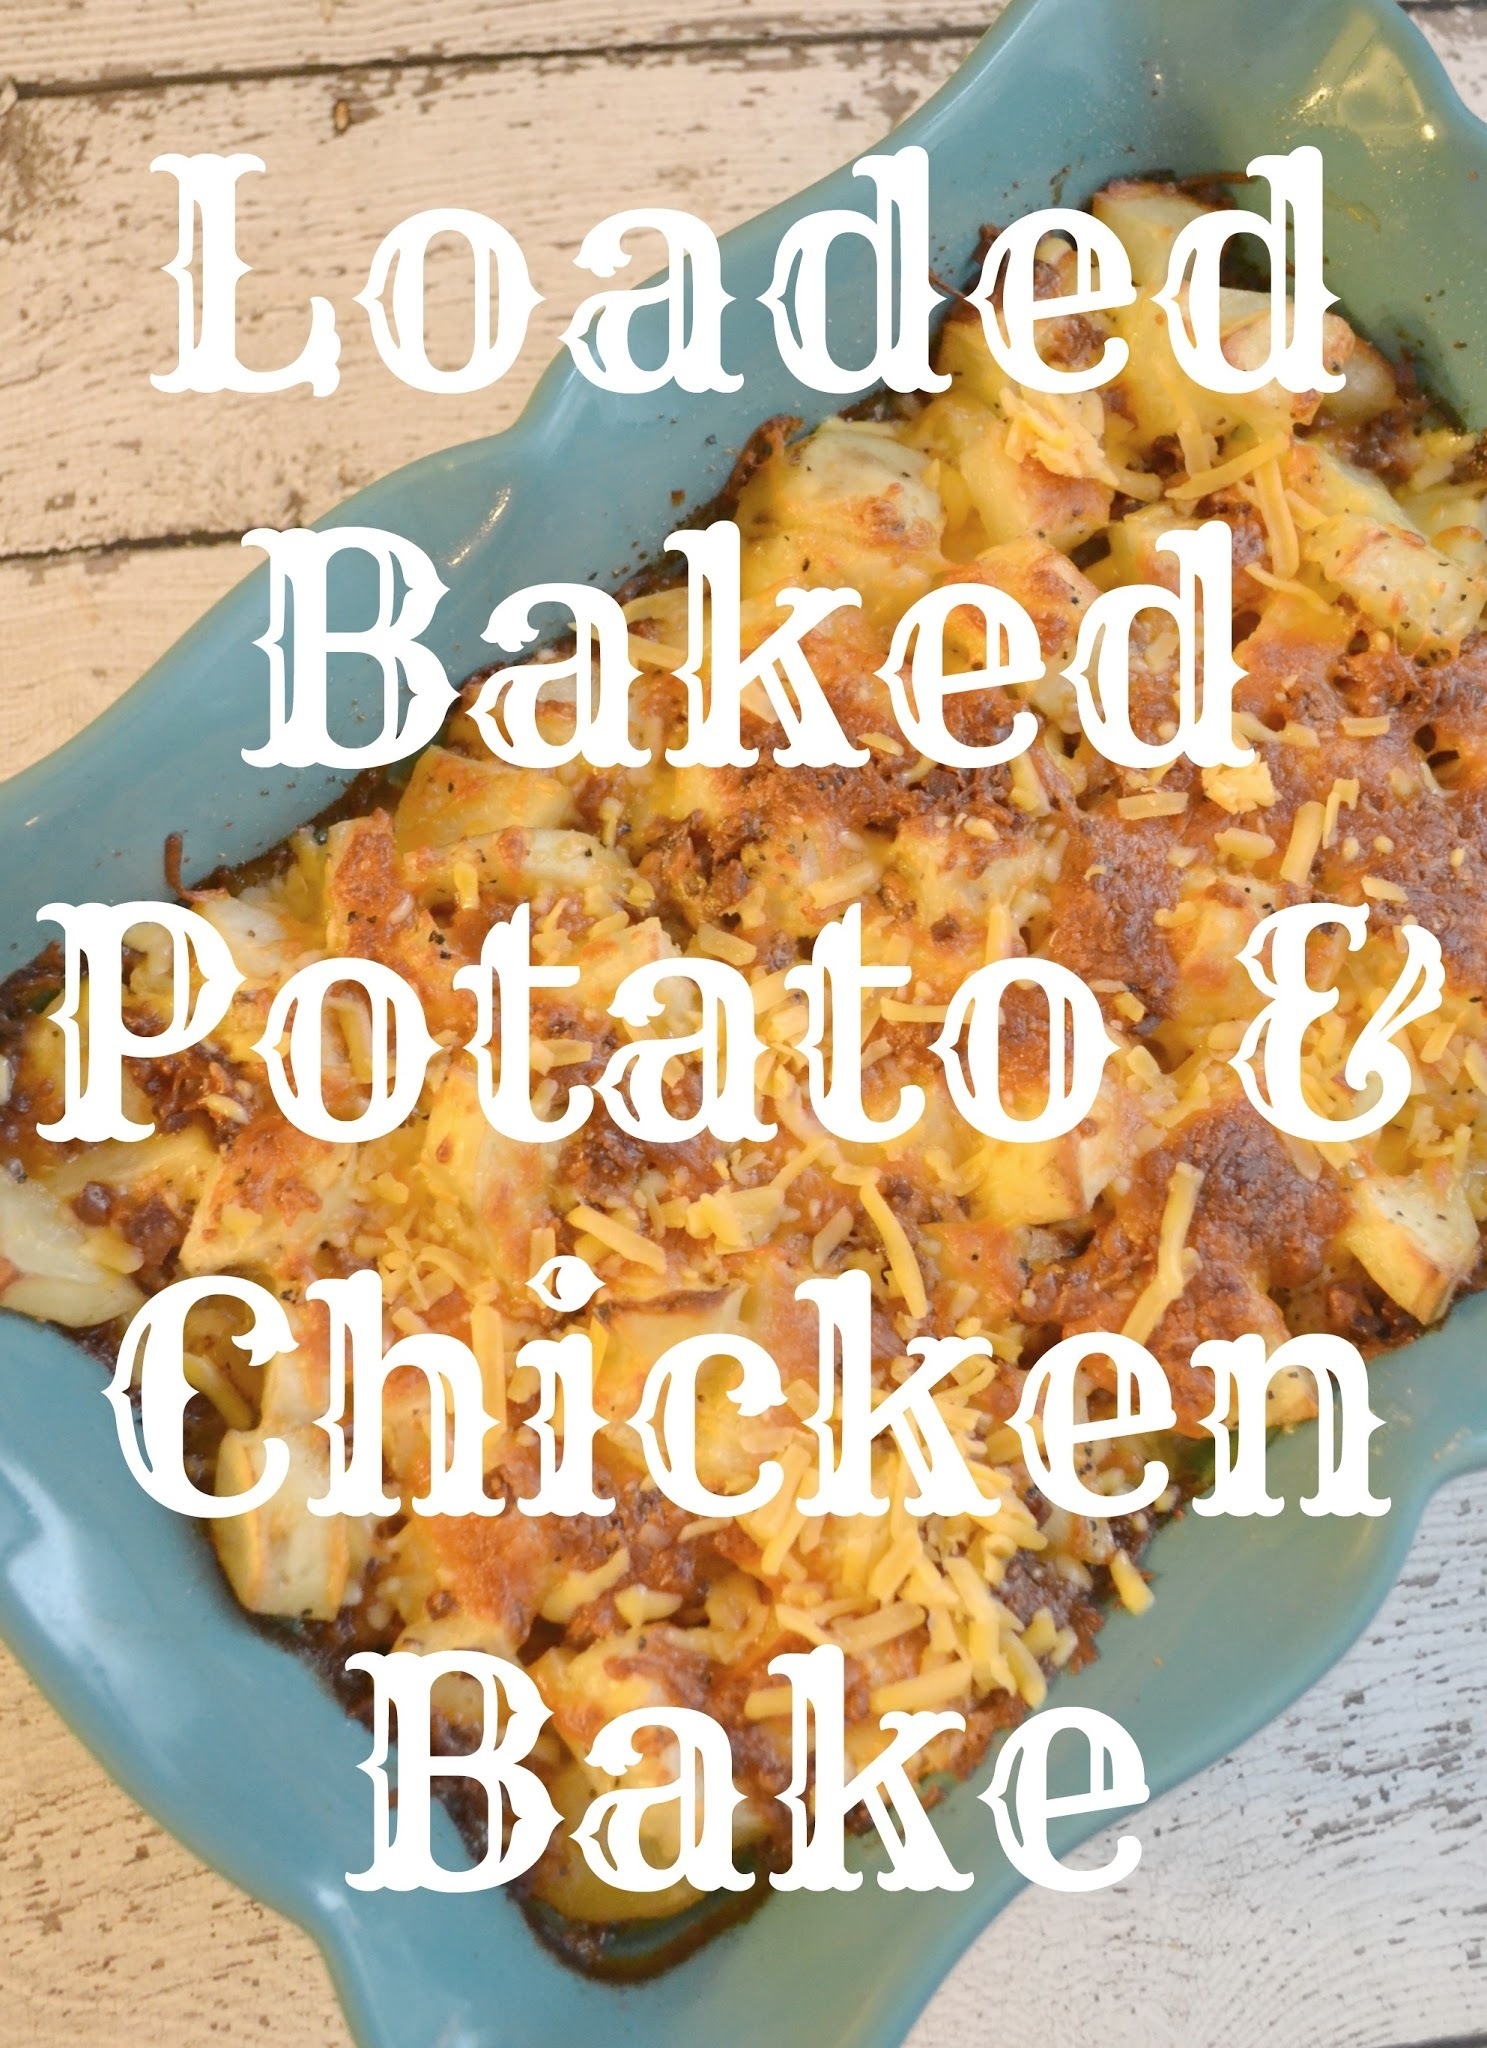 Loaded Baked Potato & Chicken Bake Recipe